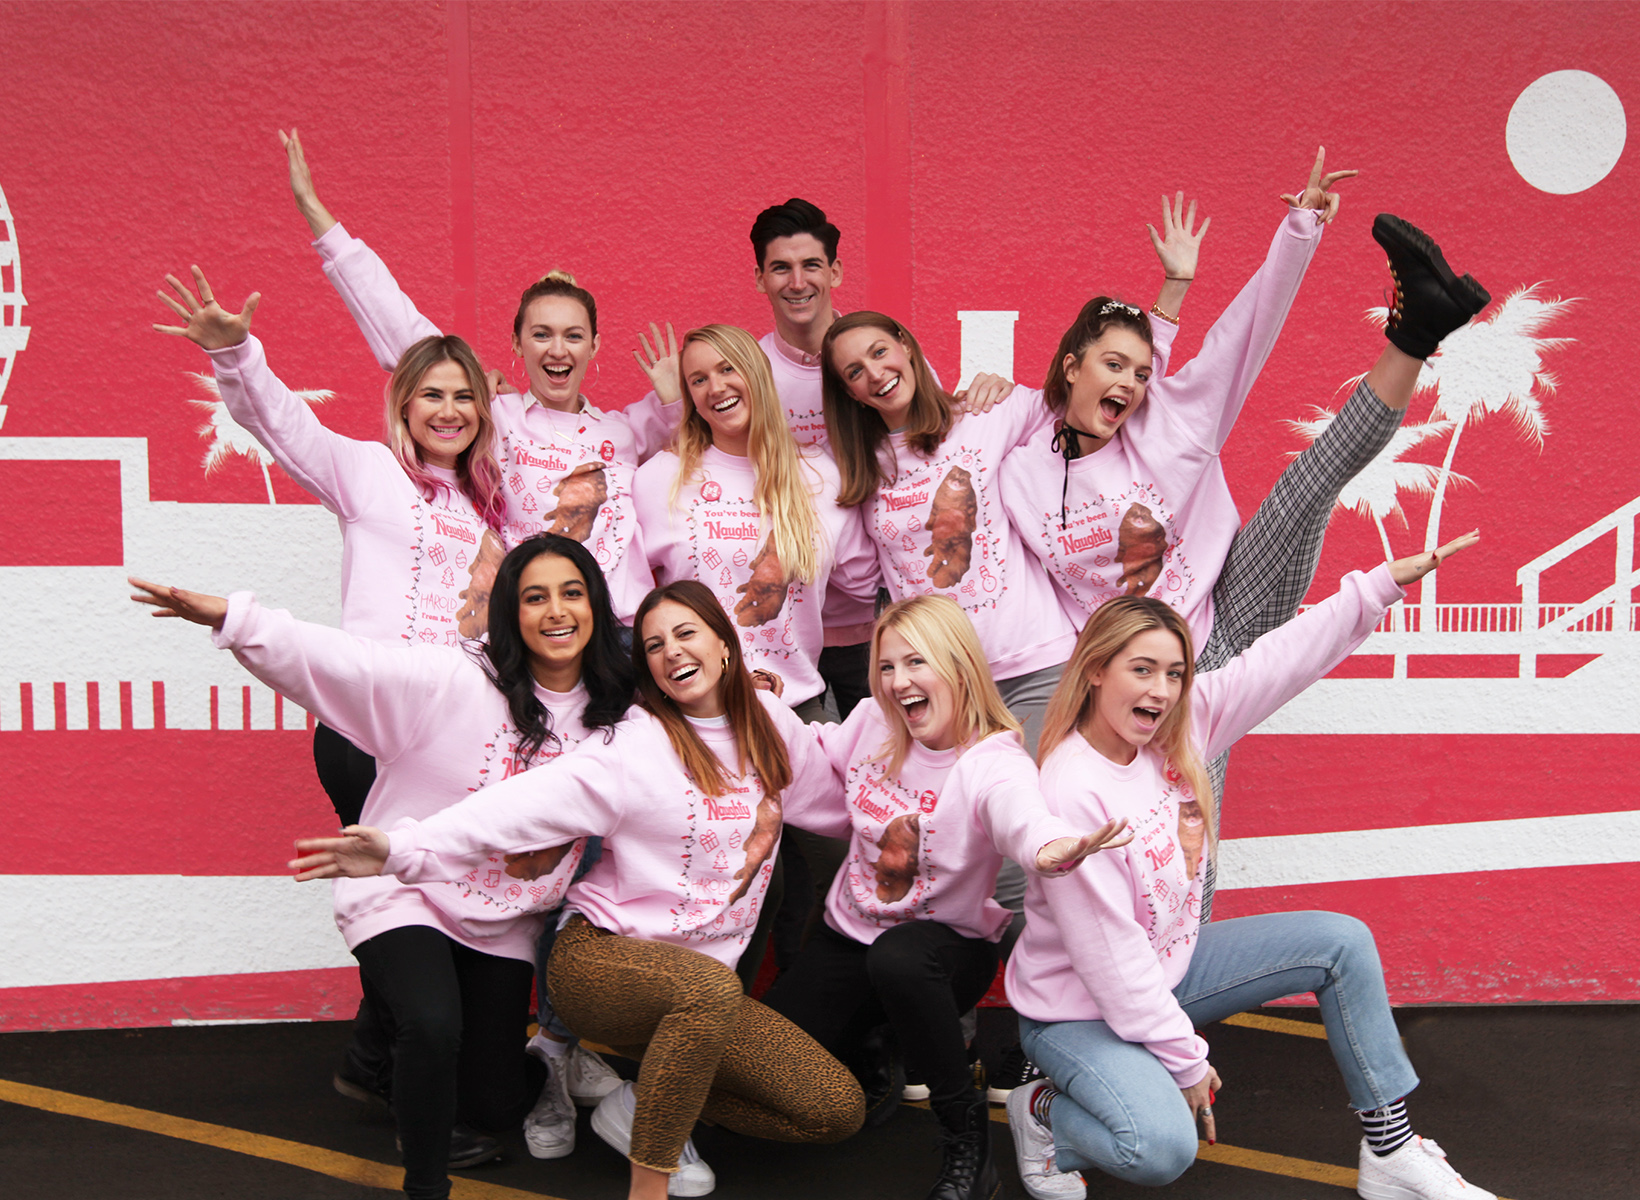 10 people pose for a high energy picture in pink sweatshirts